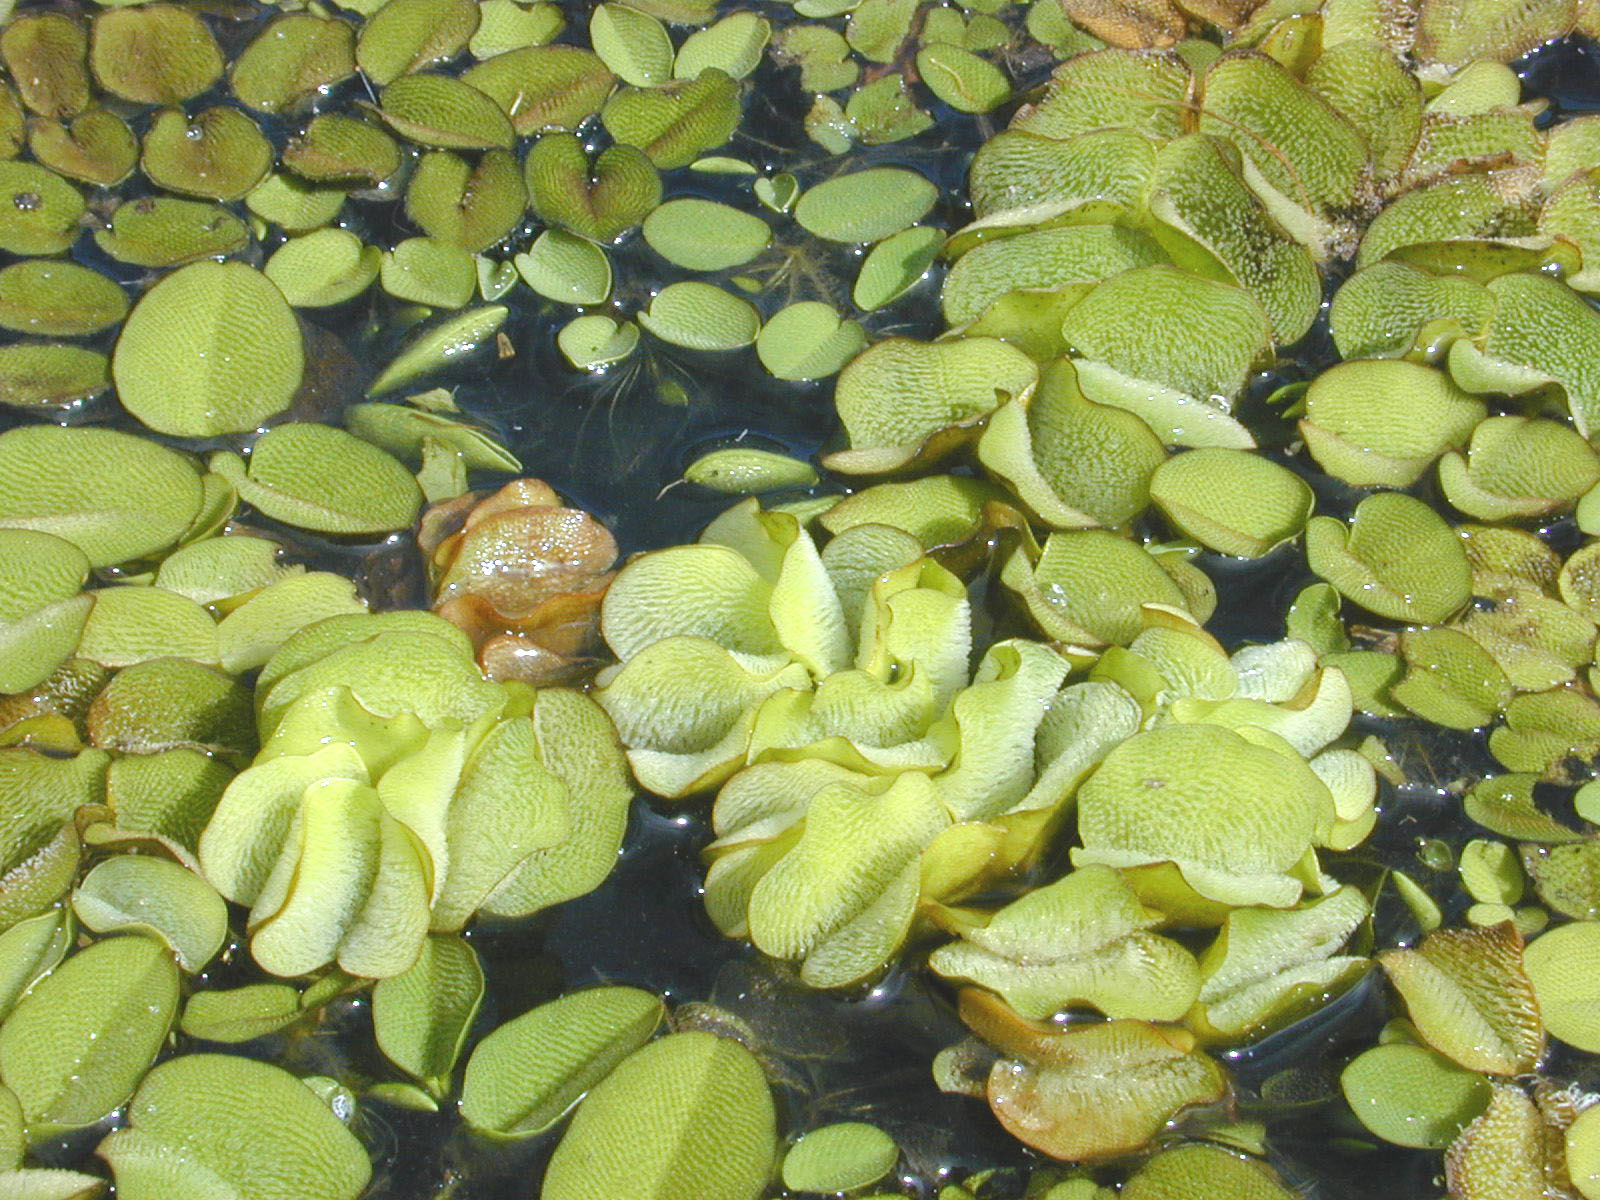 a description of the plant salvinia molesta